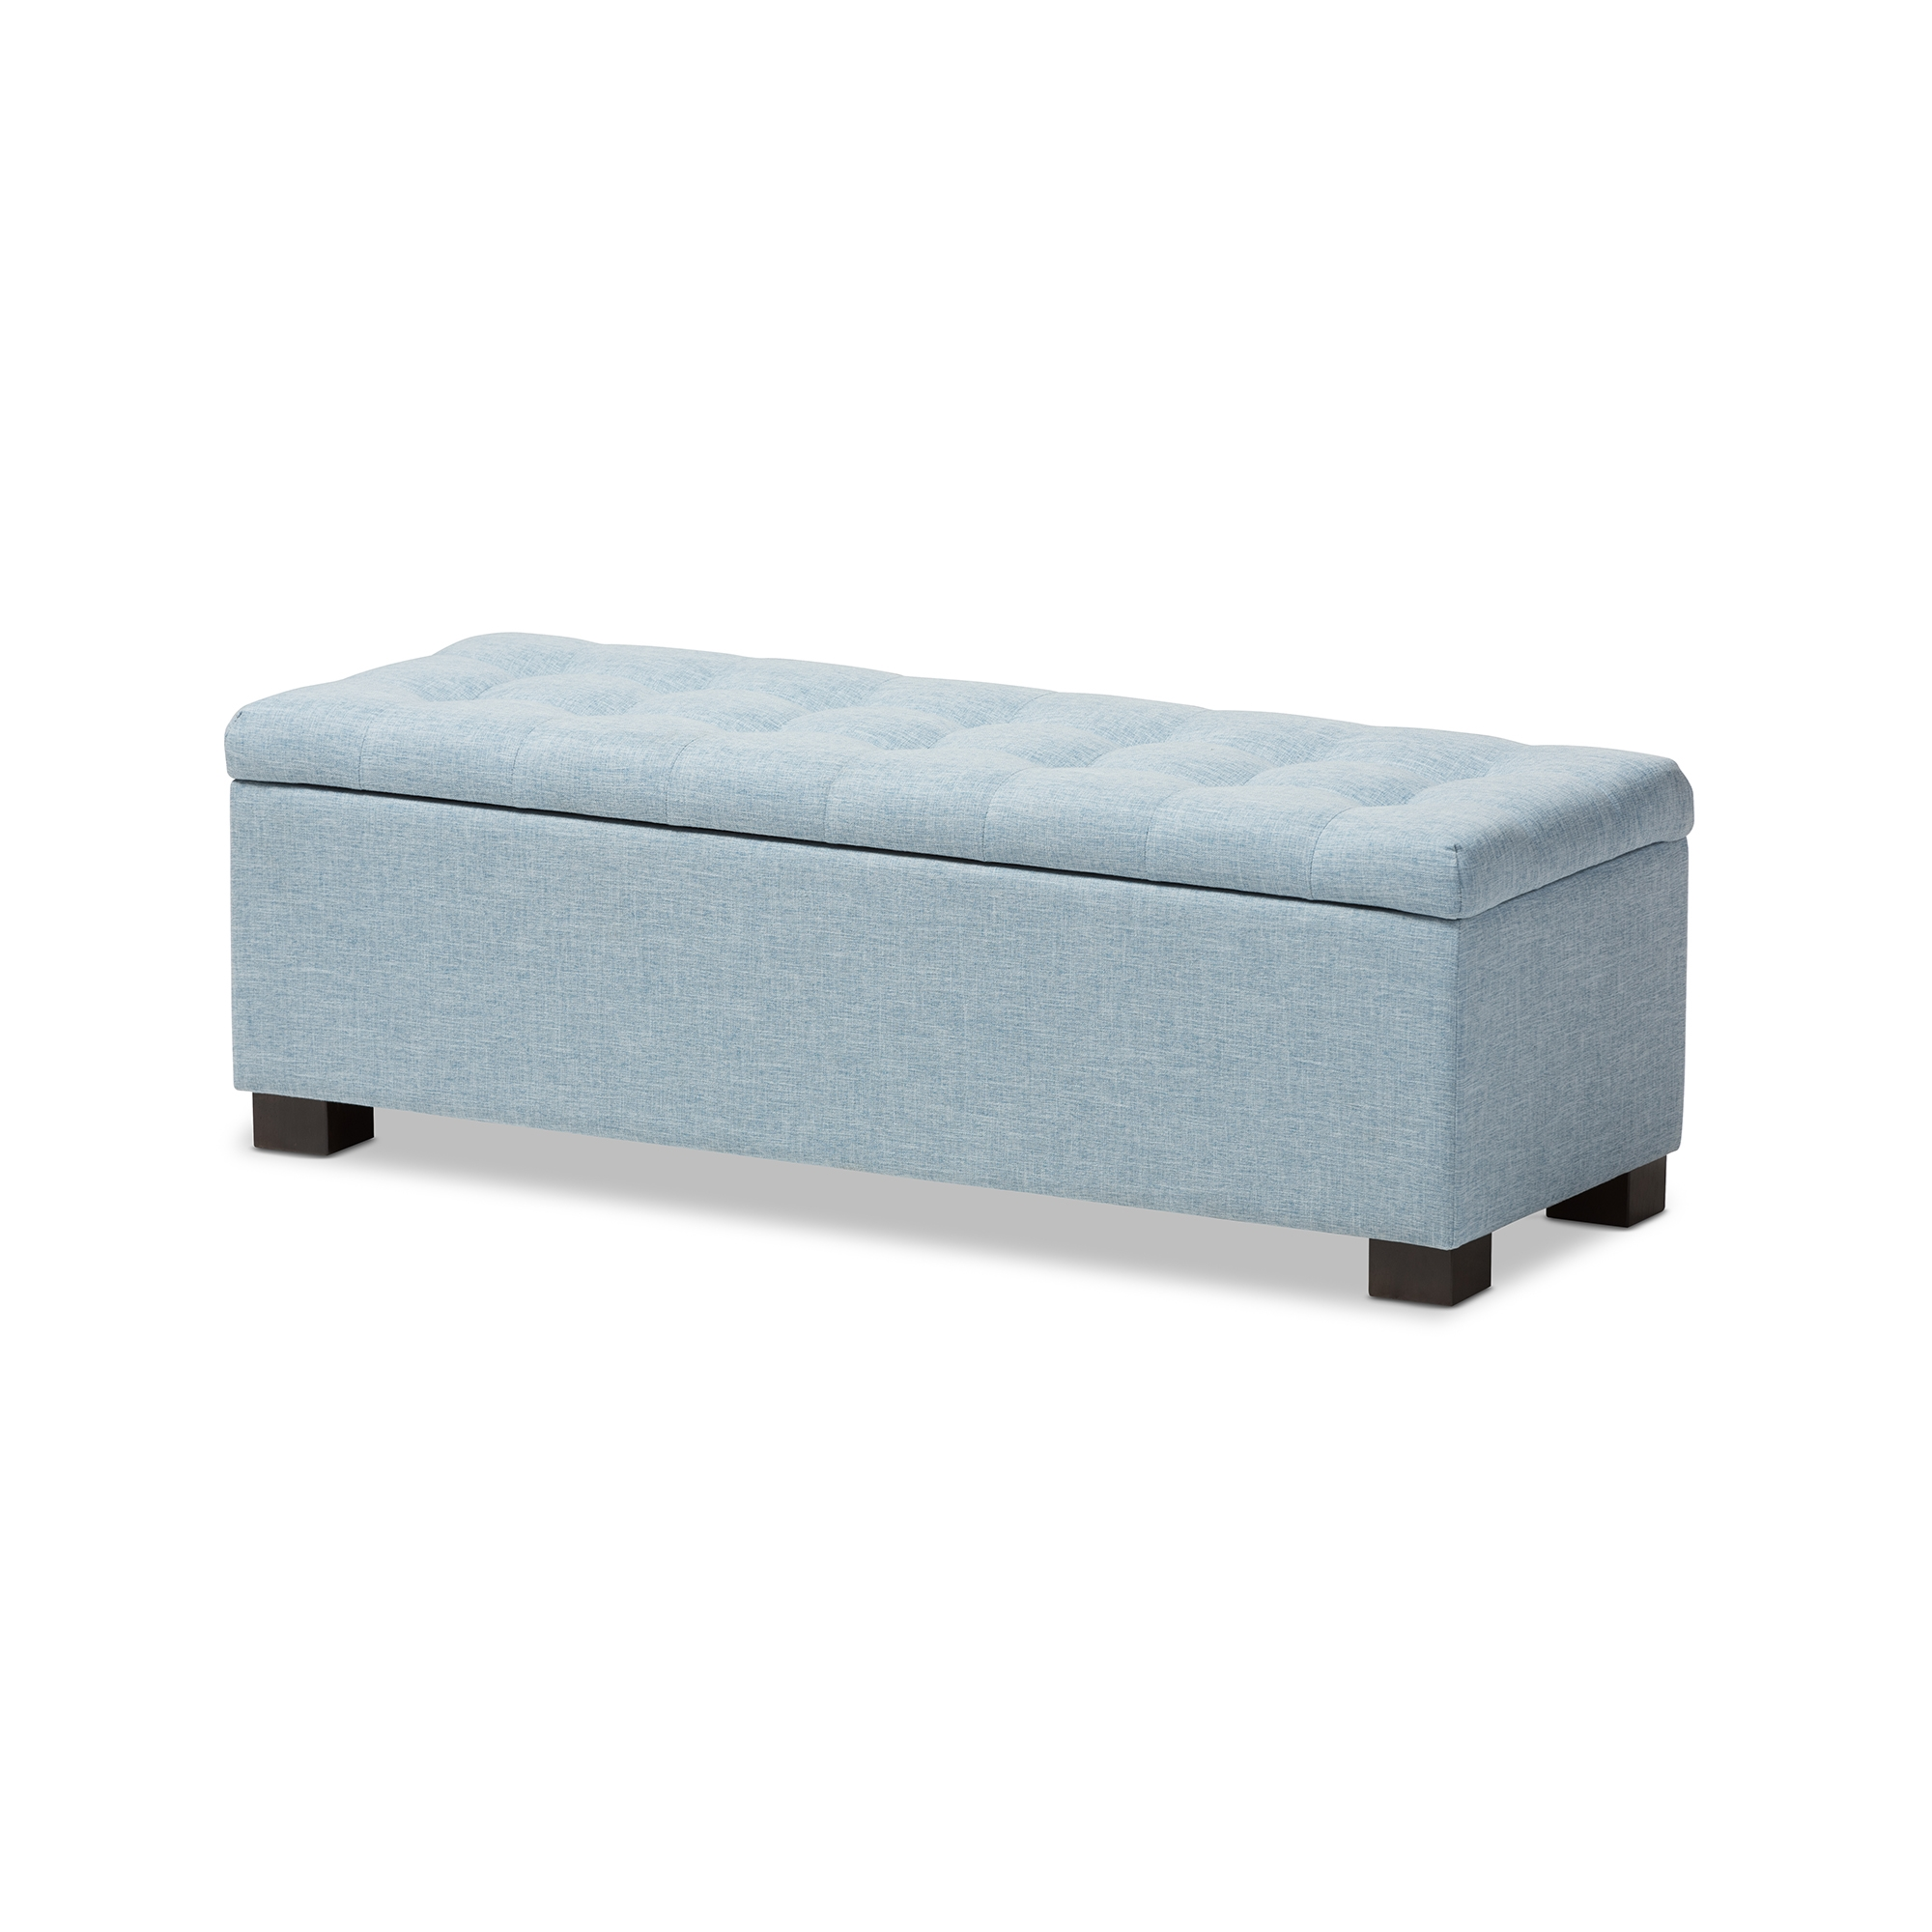 modern storage ottoman. Baxton Studio Roanoke Modern And Contemporary Light Blue Fabric Upholstered Grid-Tufting Storage Ottoman Bench